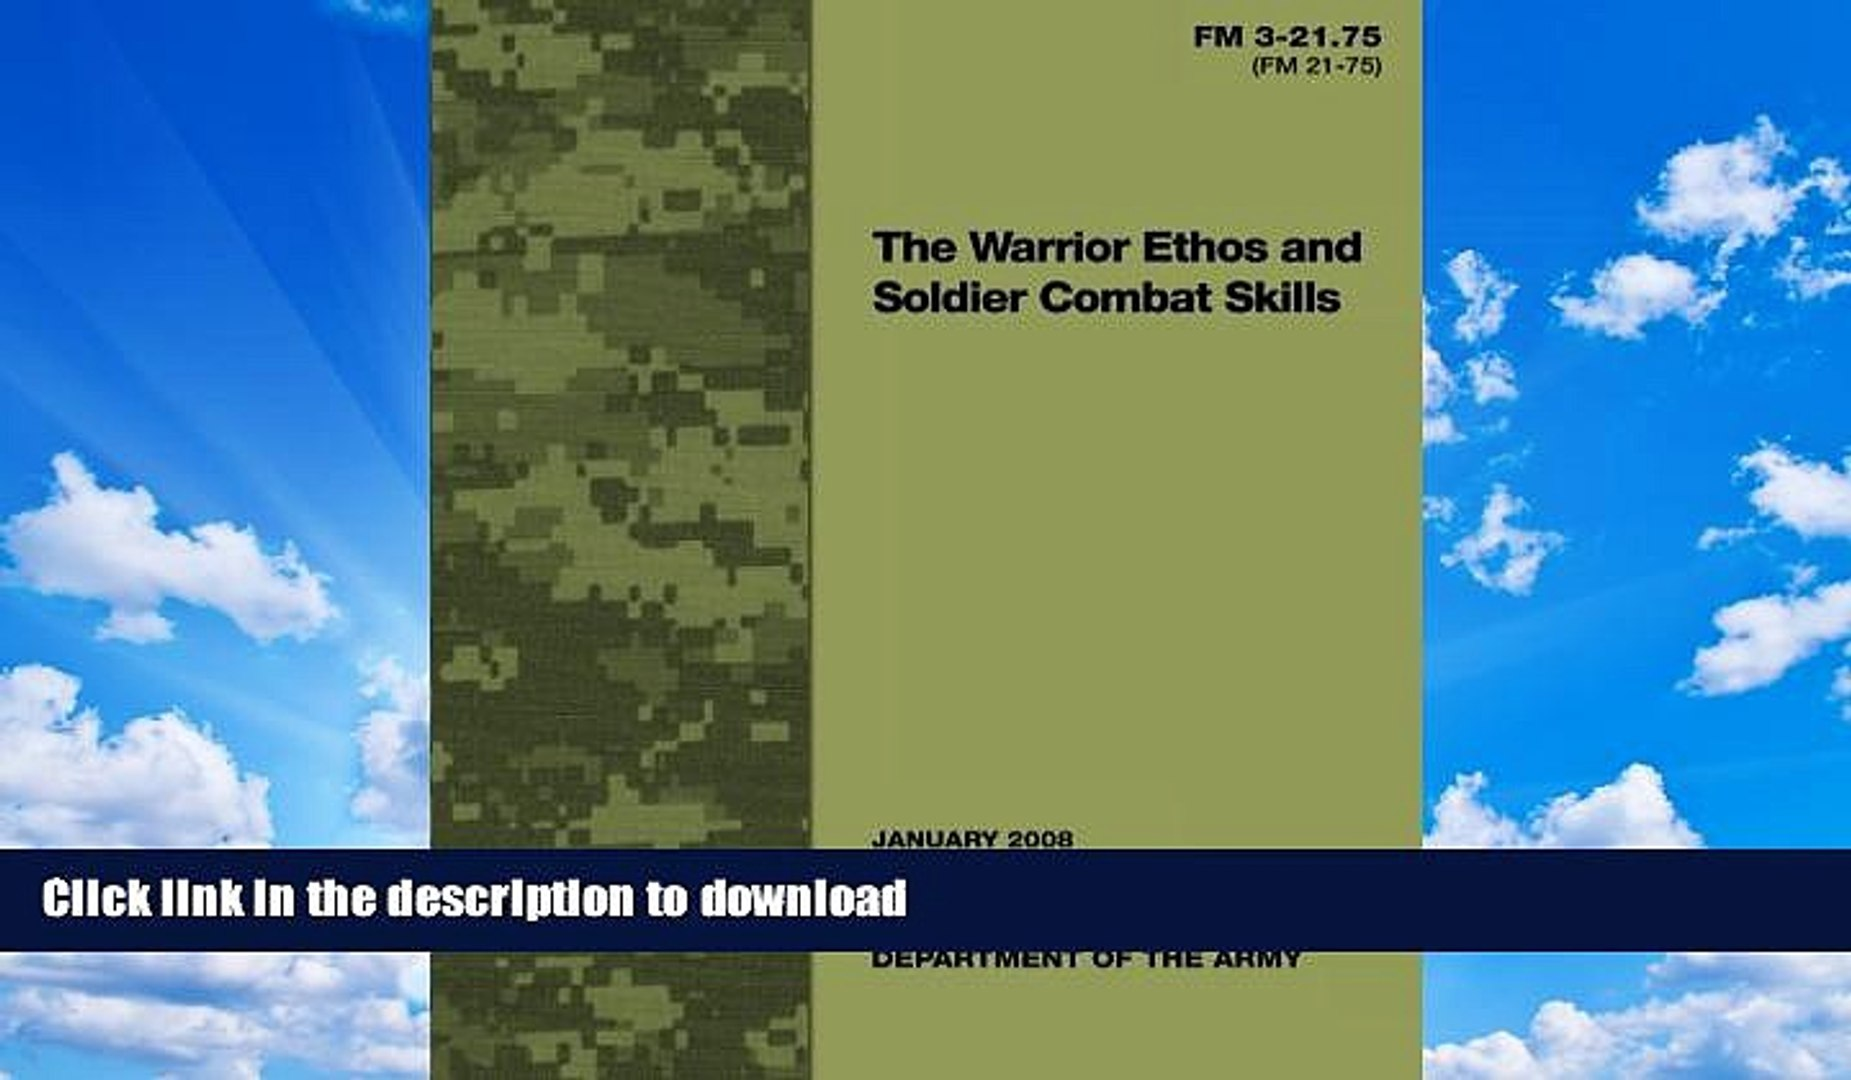 FAVORITE BOOK  The Warrior Ethos and Soldier Combat Skills: Field Manual FM 3-21.75 (FM 21-75)